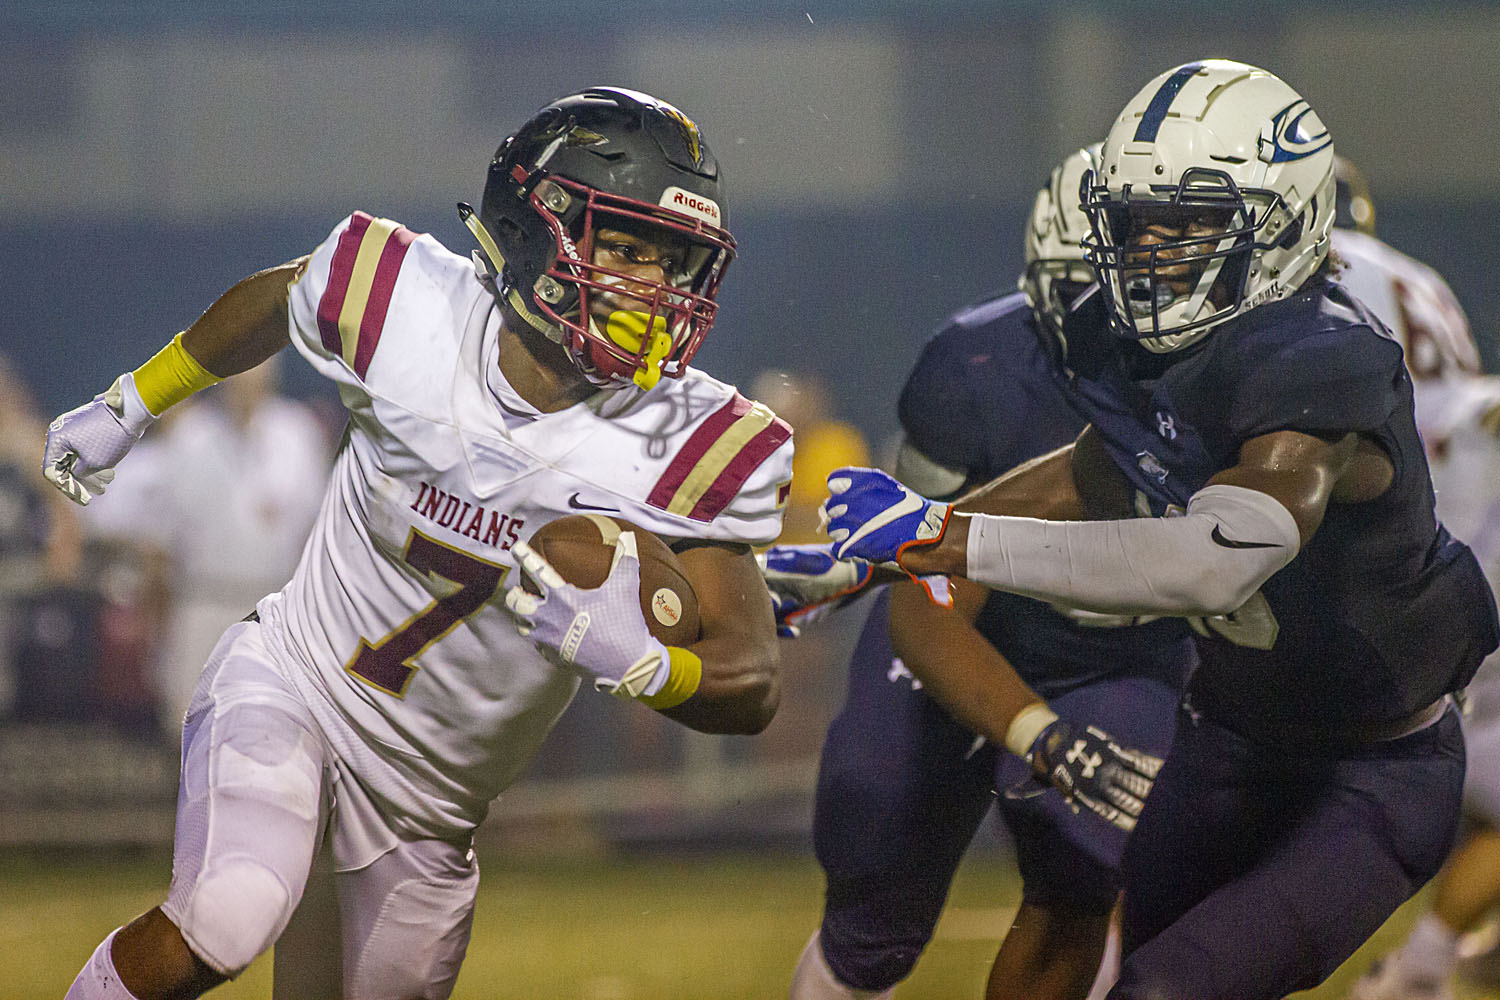 Pinson Valley makes it 6 in a row against crosstown rival Clay-Chalkville